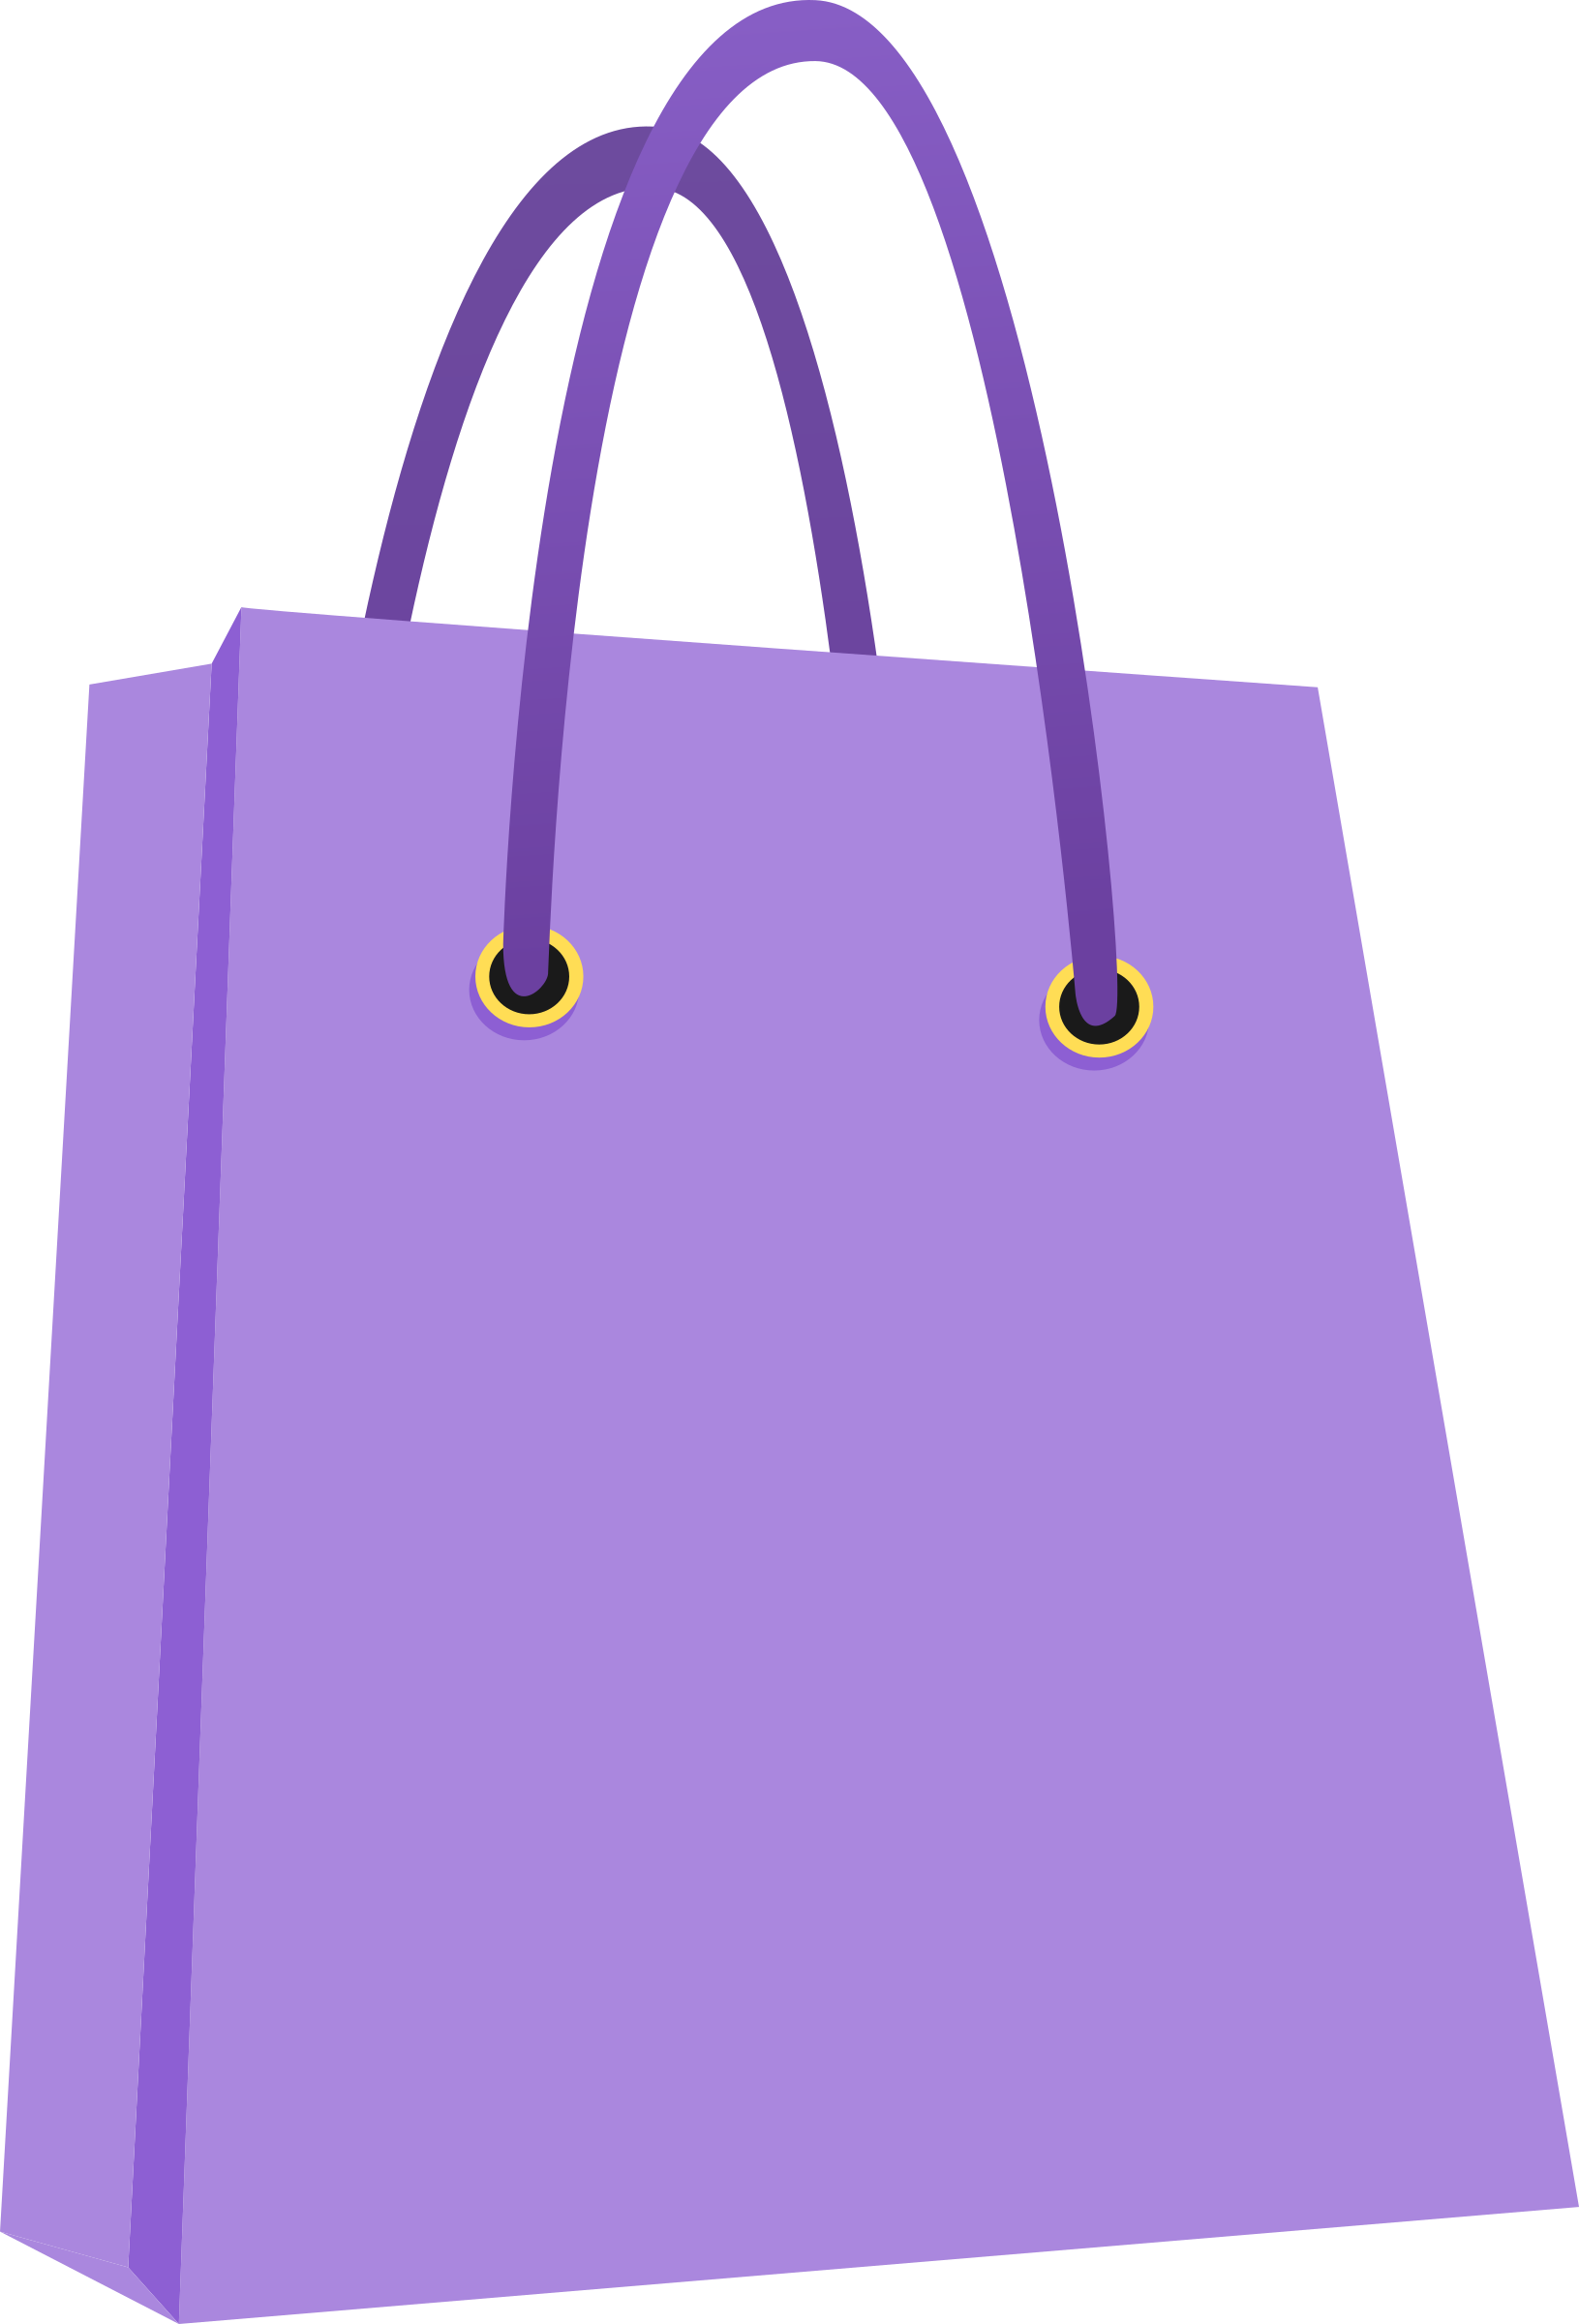 Clip bag. Tote shopping bags trolleys